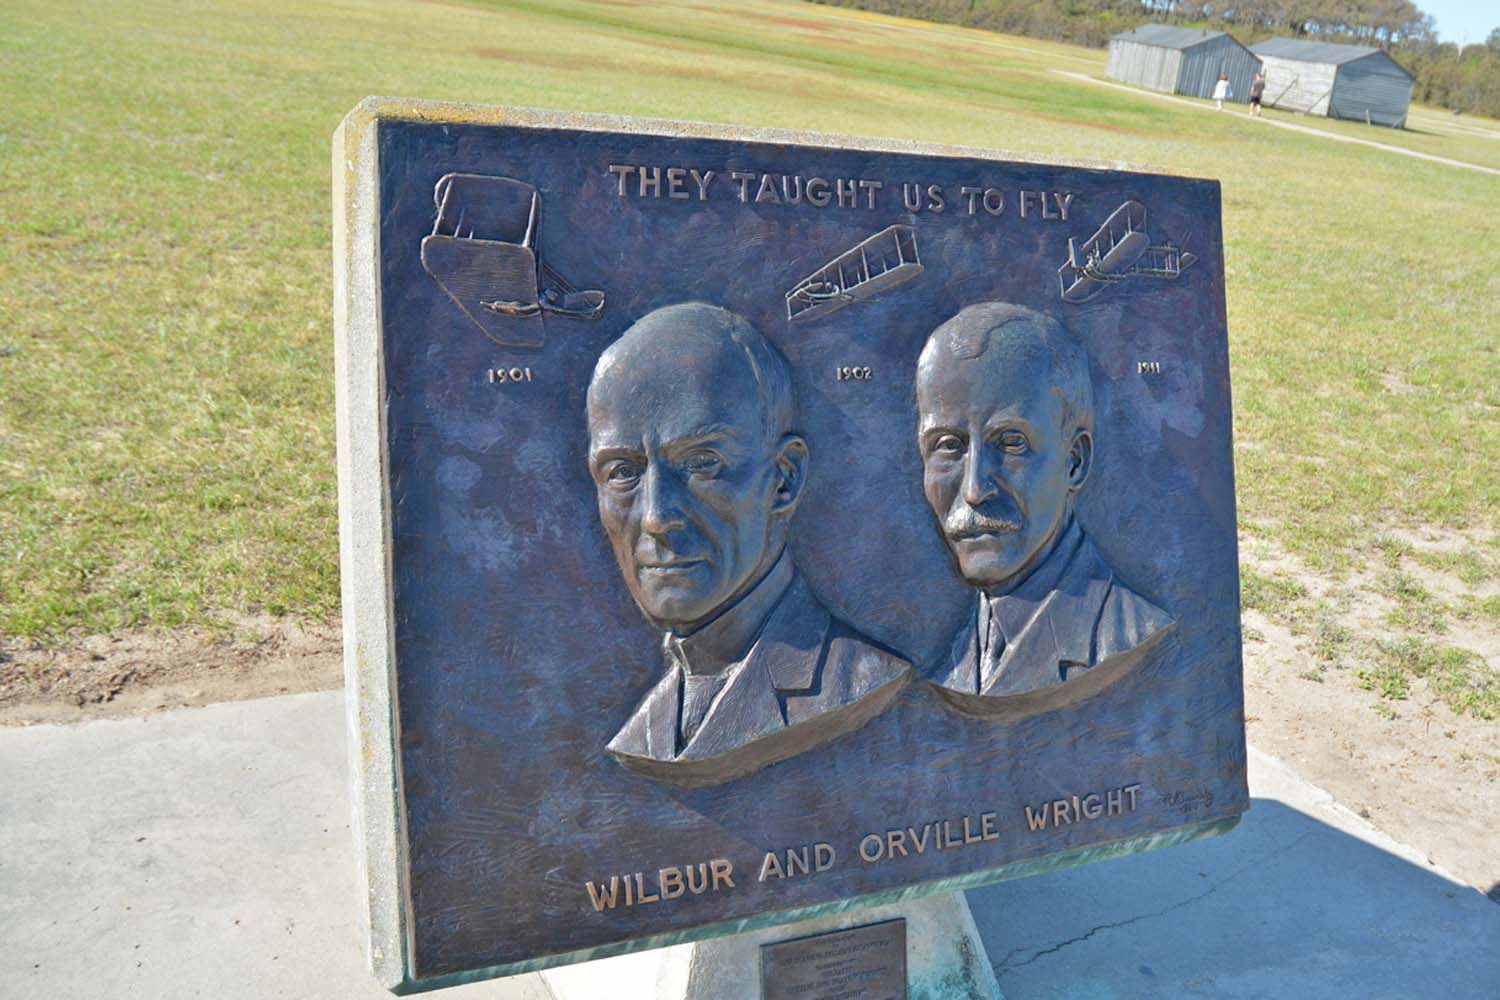 Memorial to Wilbur and Orville